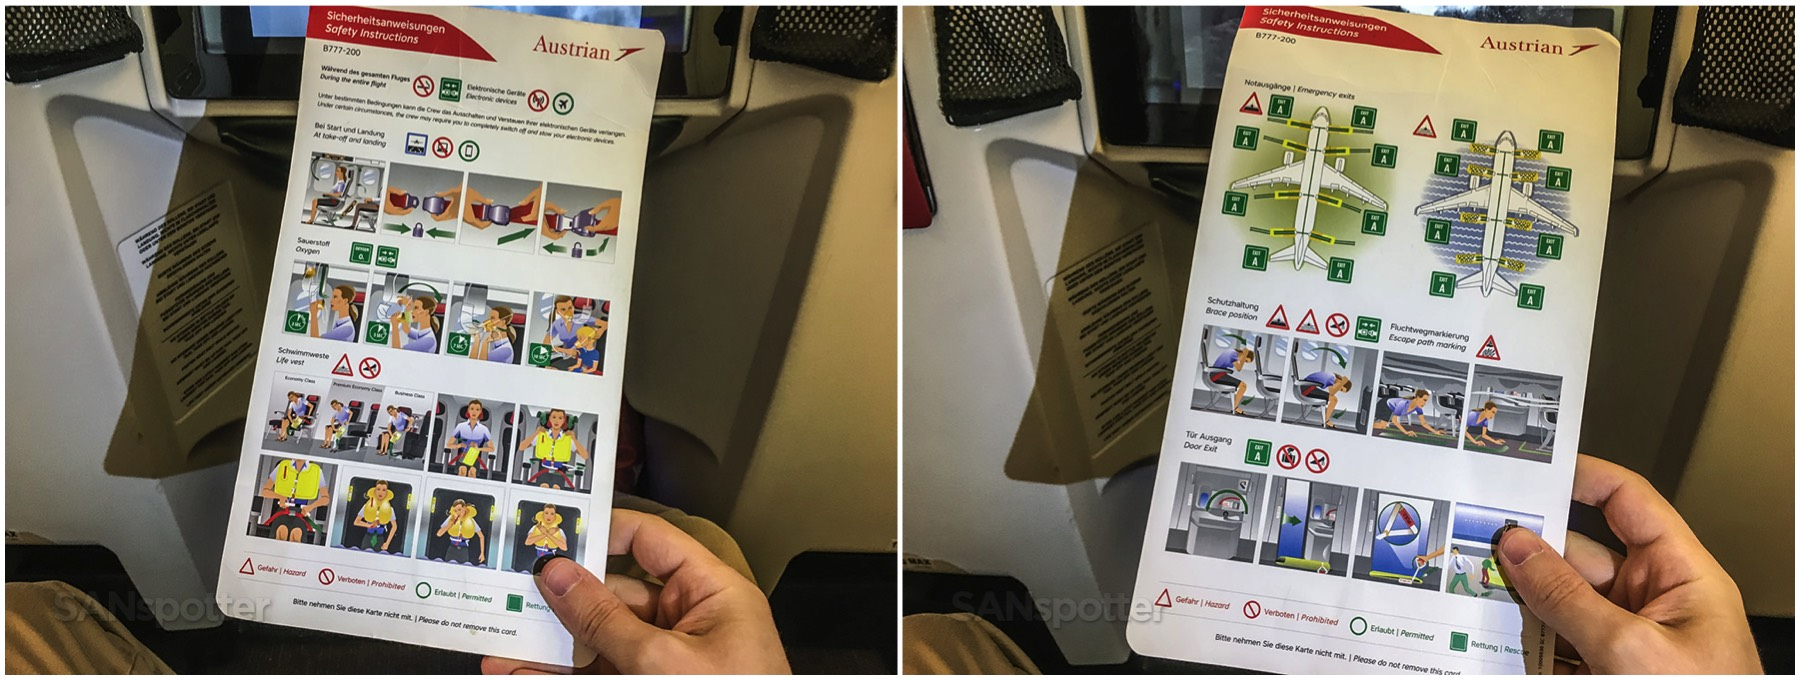 Austrian Airlines 777-200 safety card